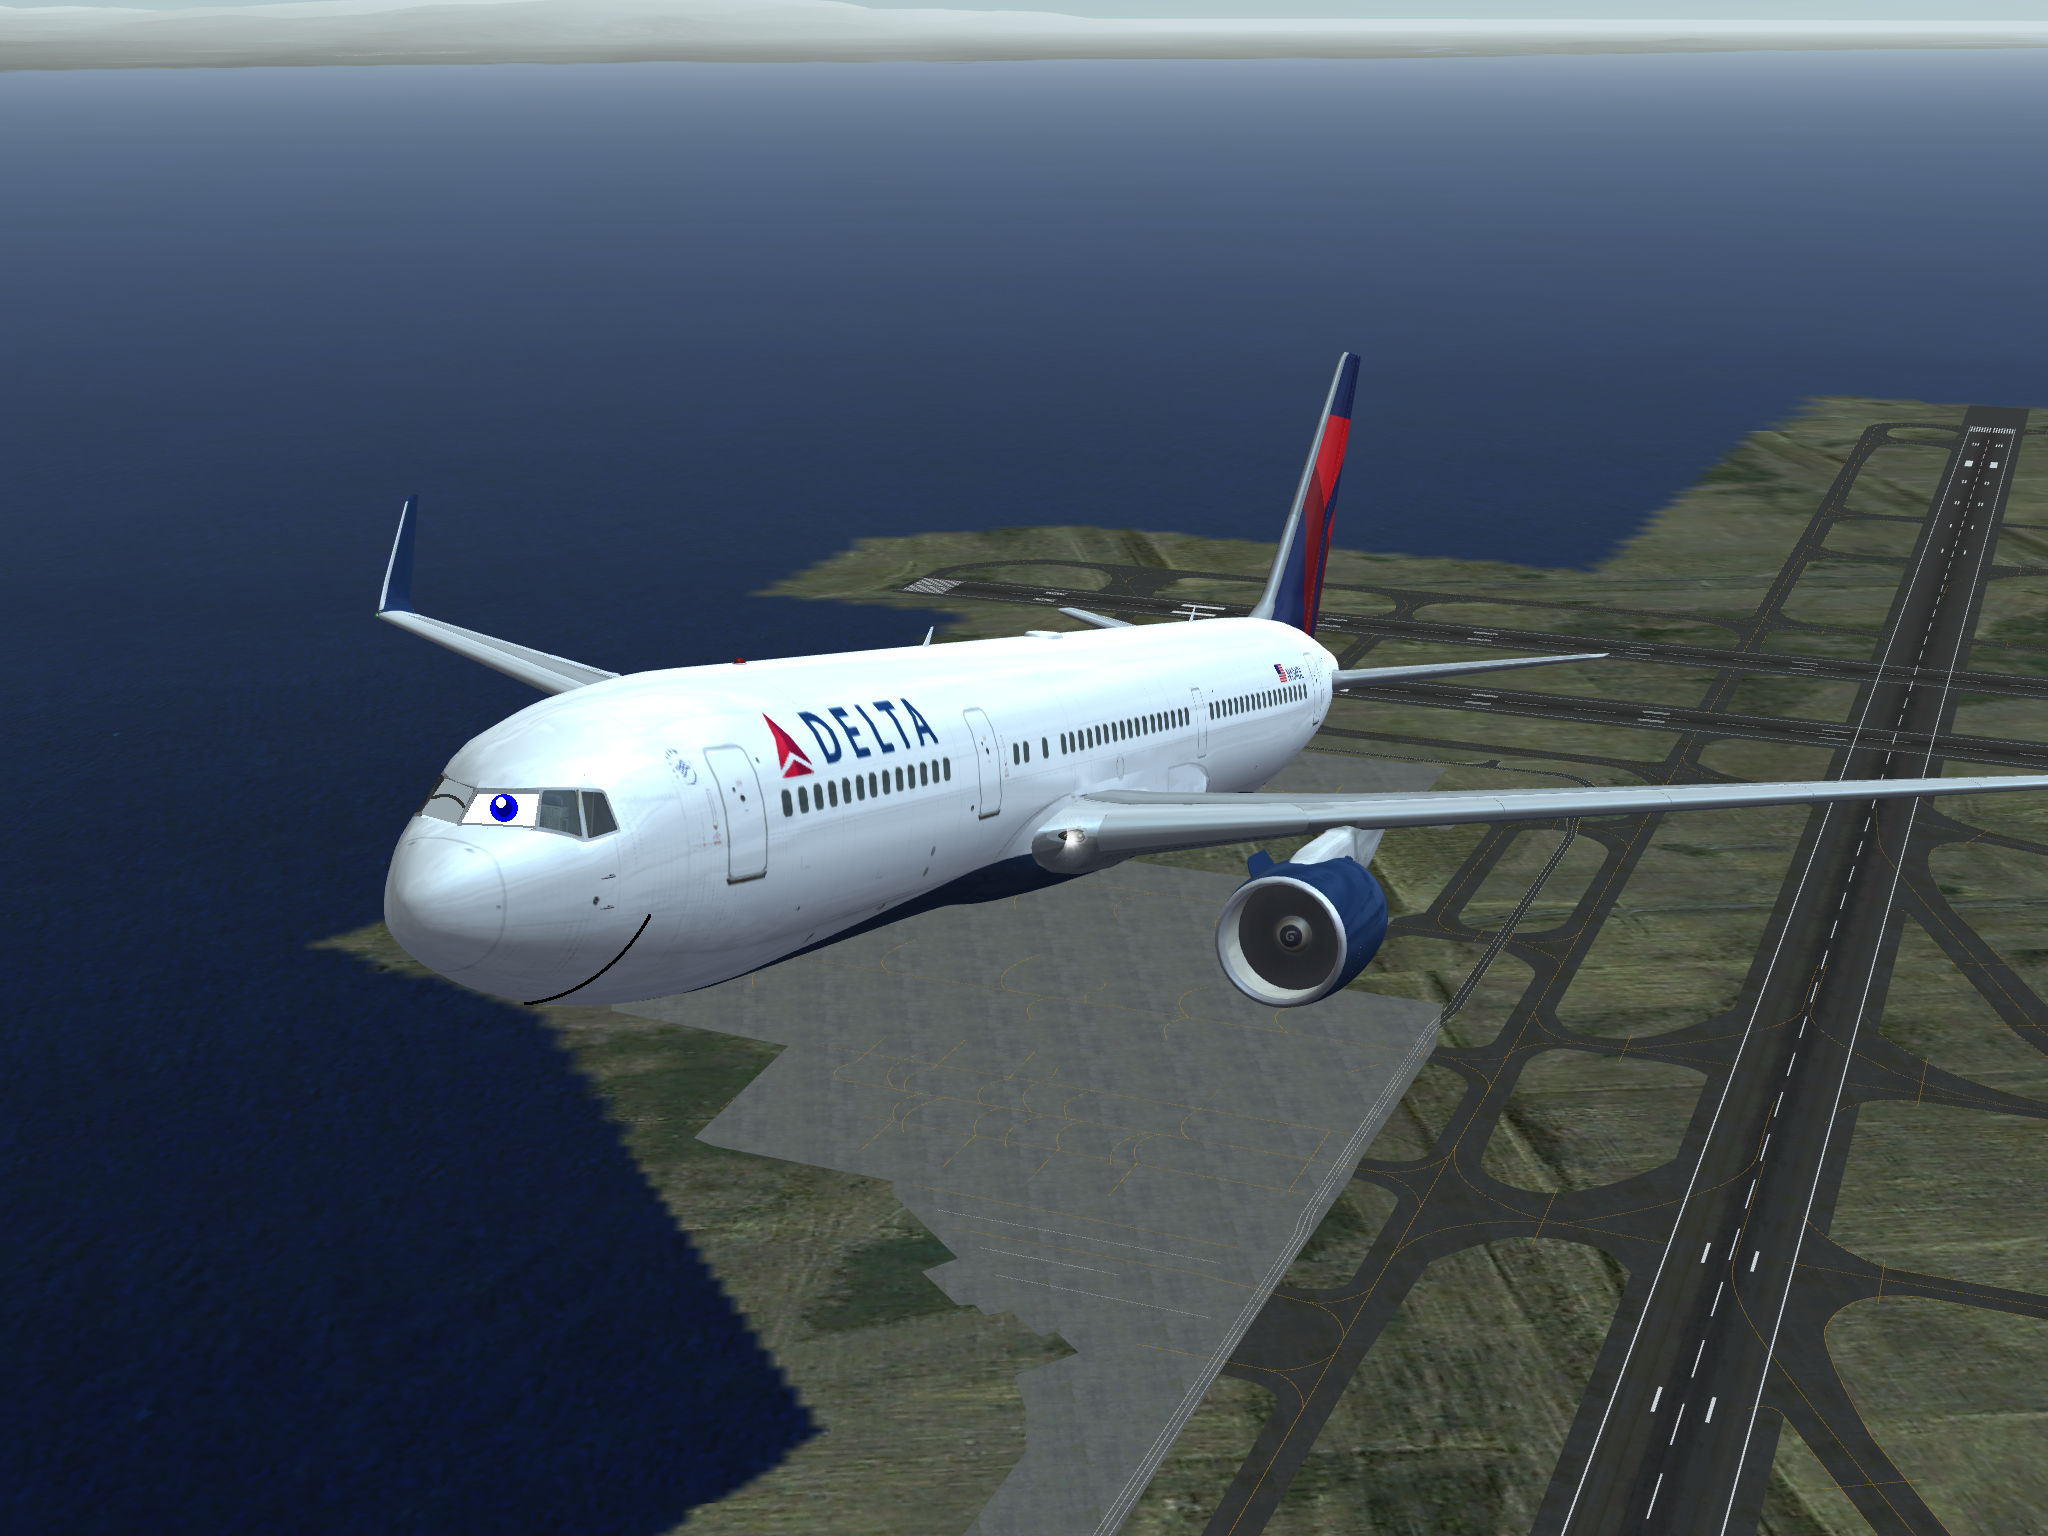 Living delta 767 in infinite flight by MacThePlaneh on DeviantArt